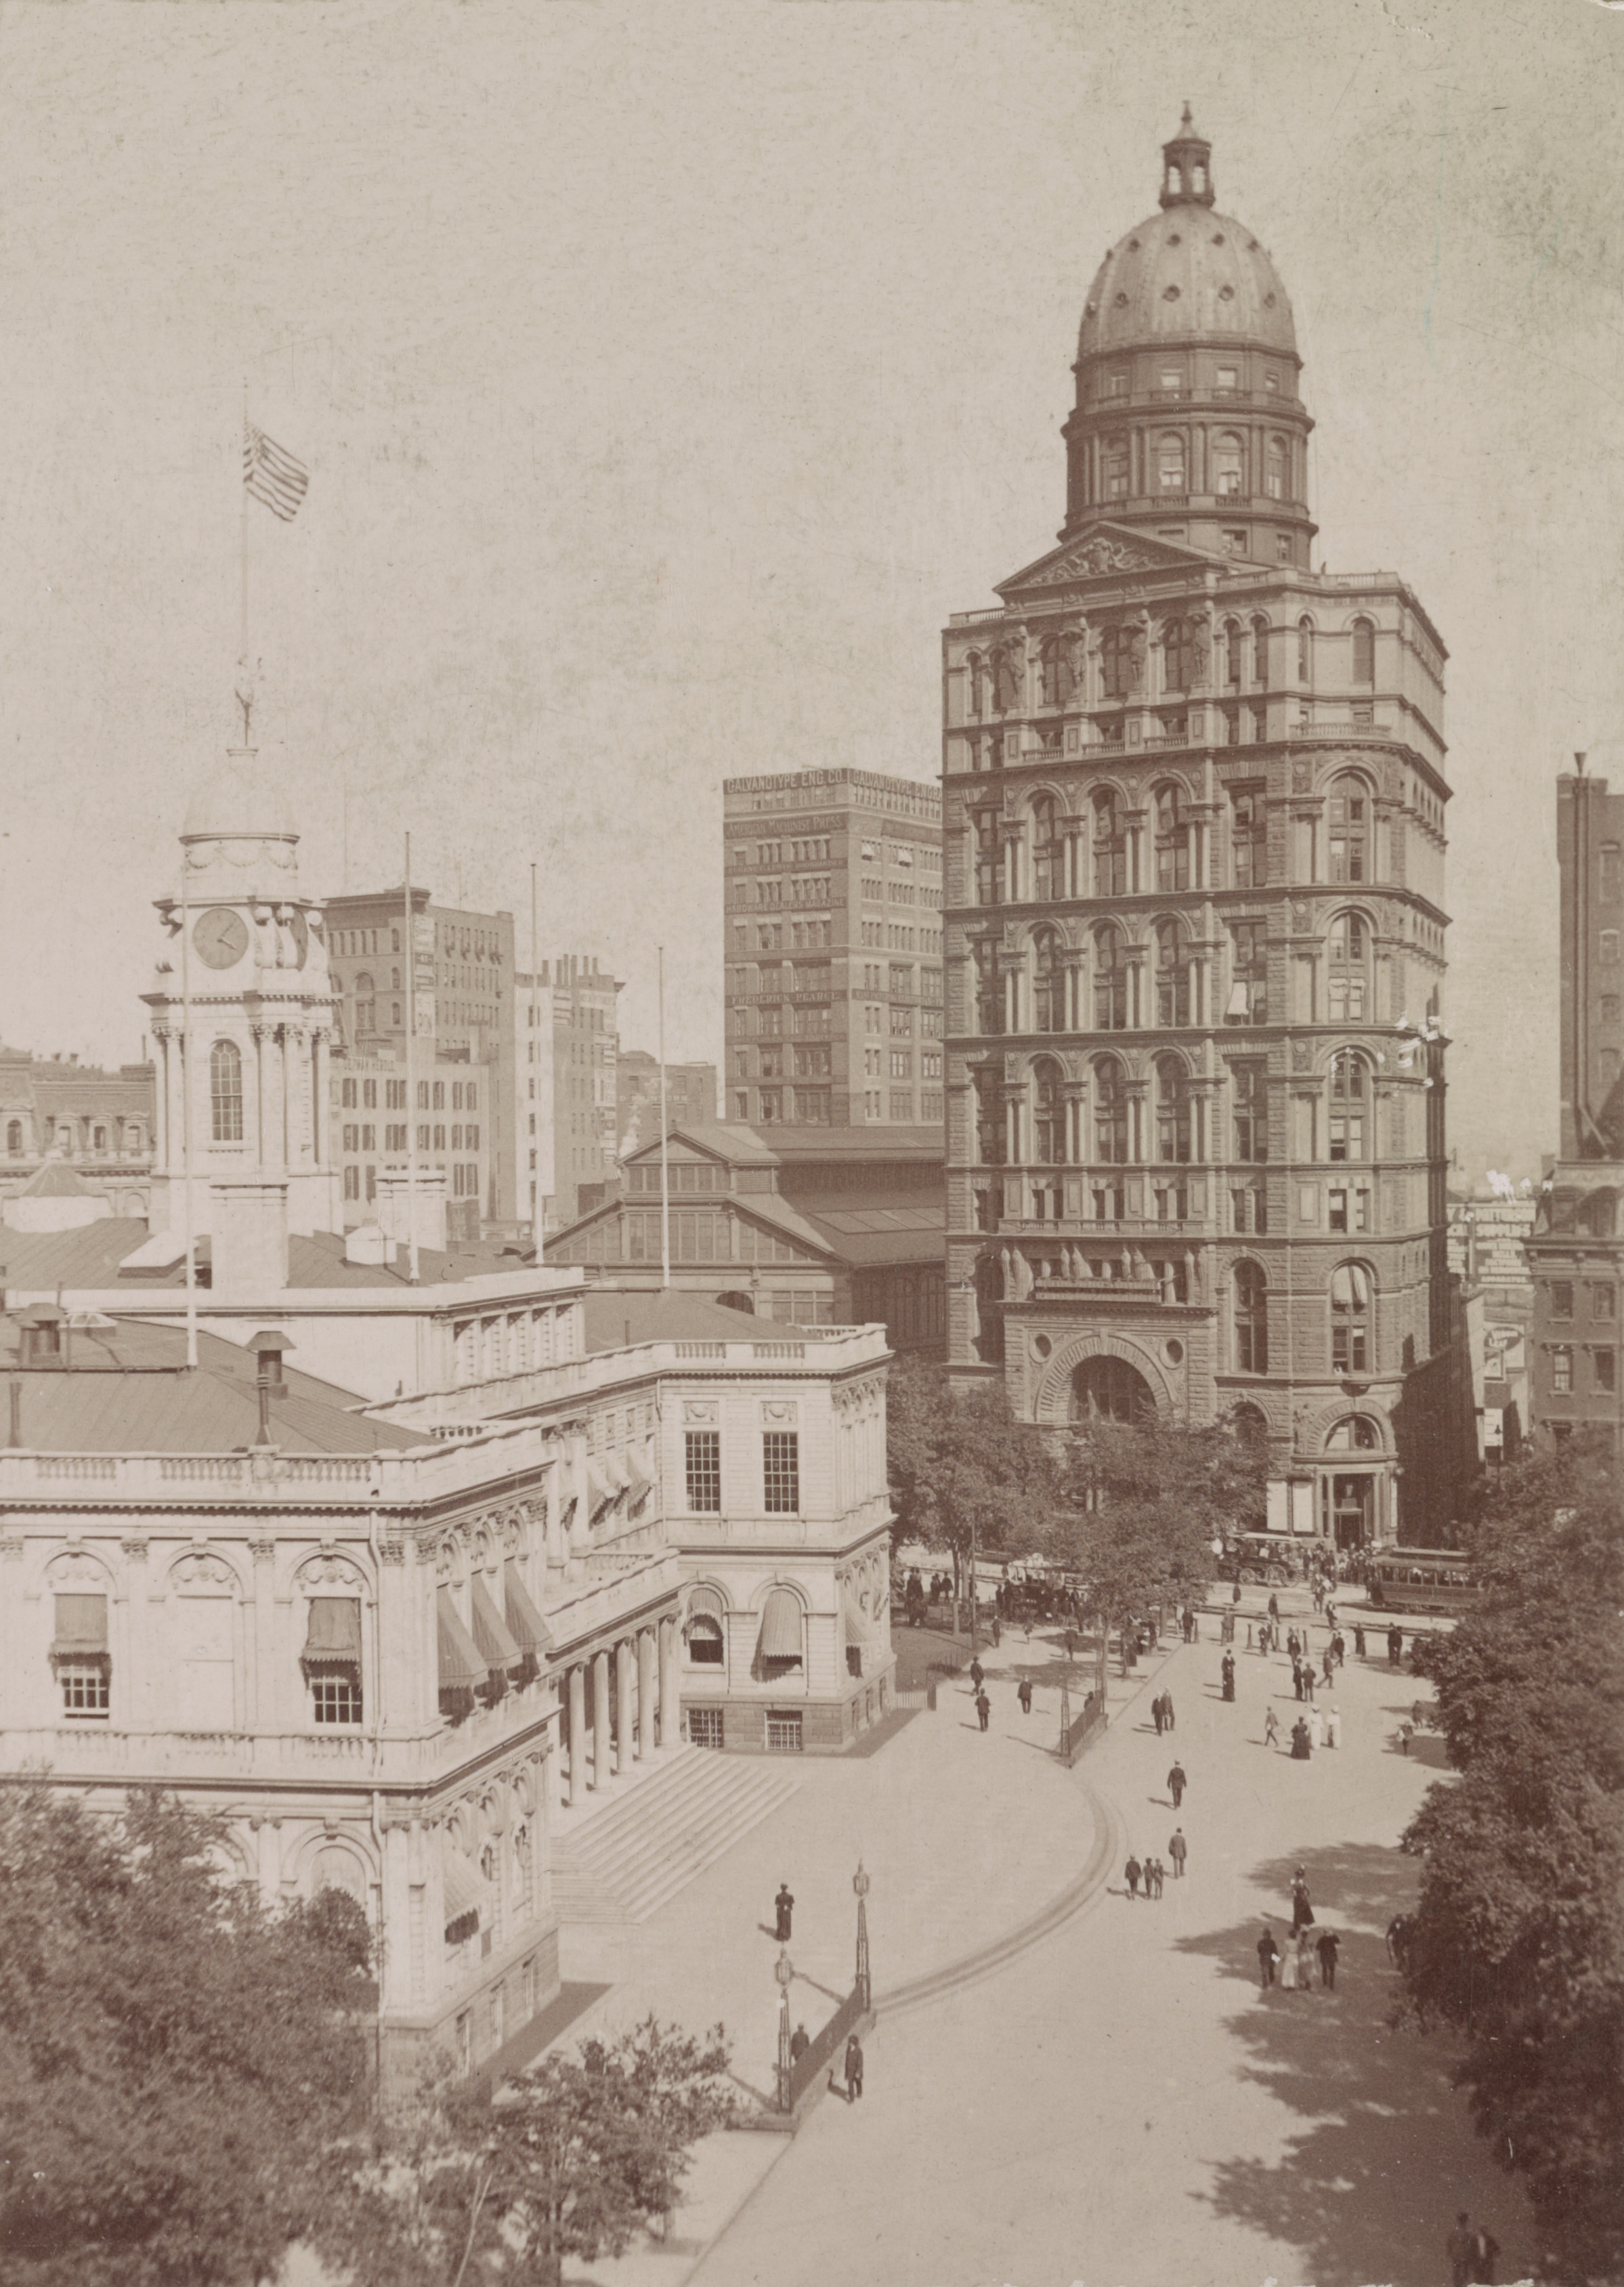 Old New York In Photos #106 - City Hall and A Description Of The Fabulous World Building